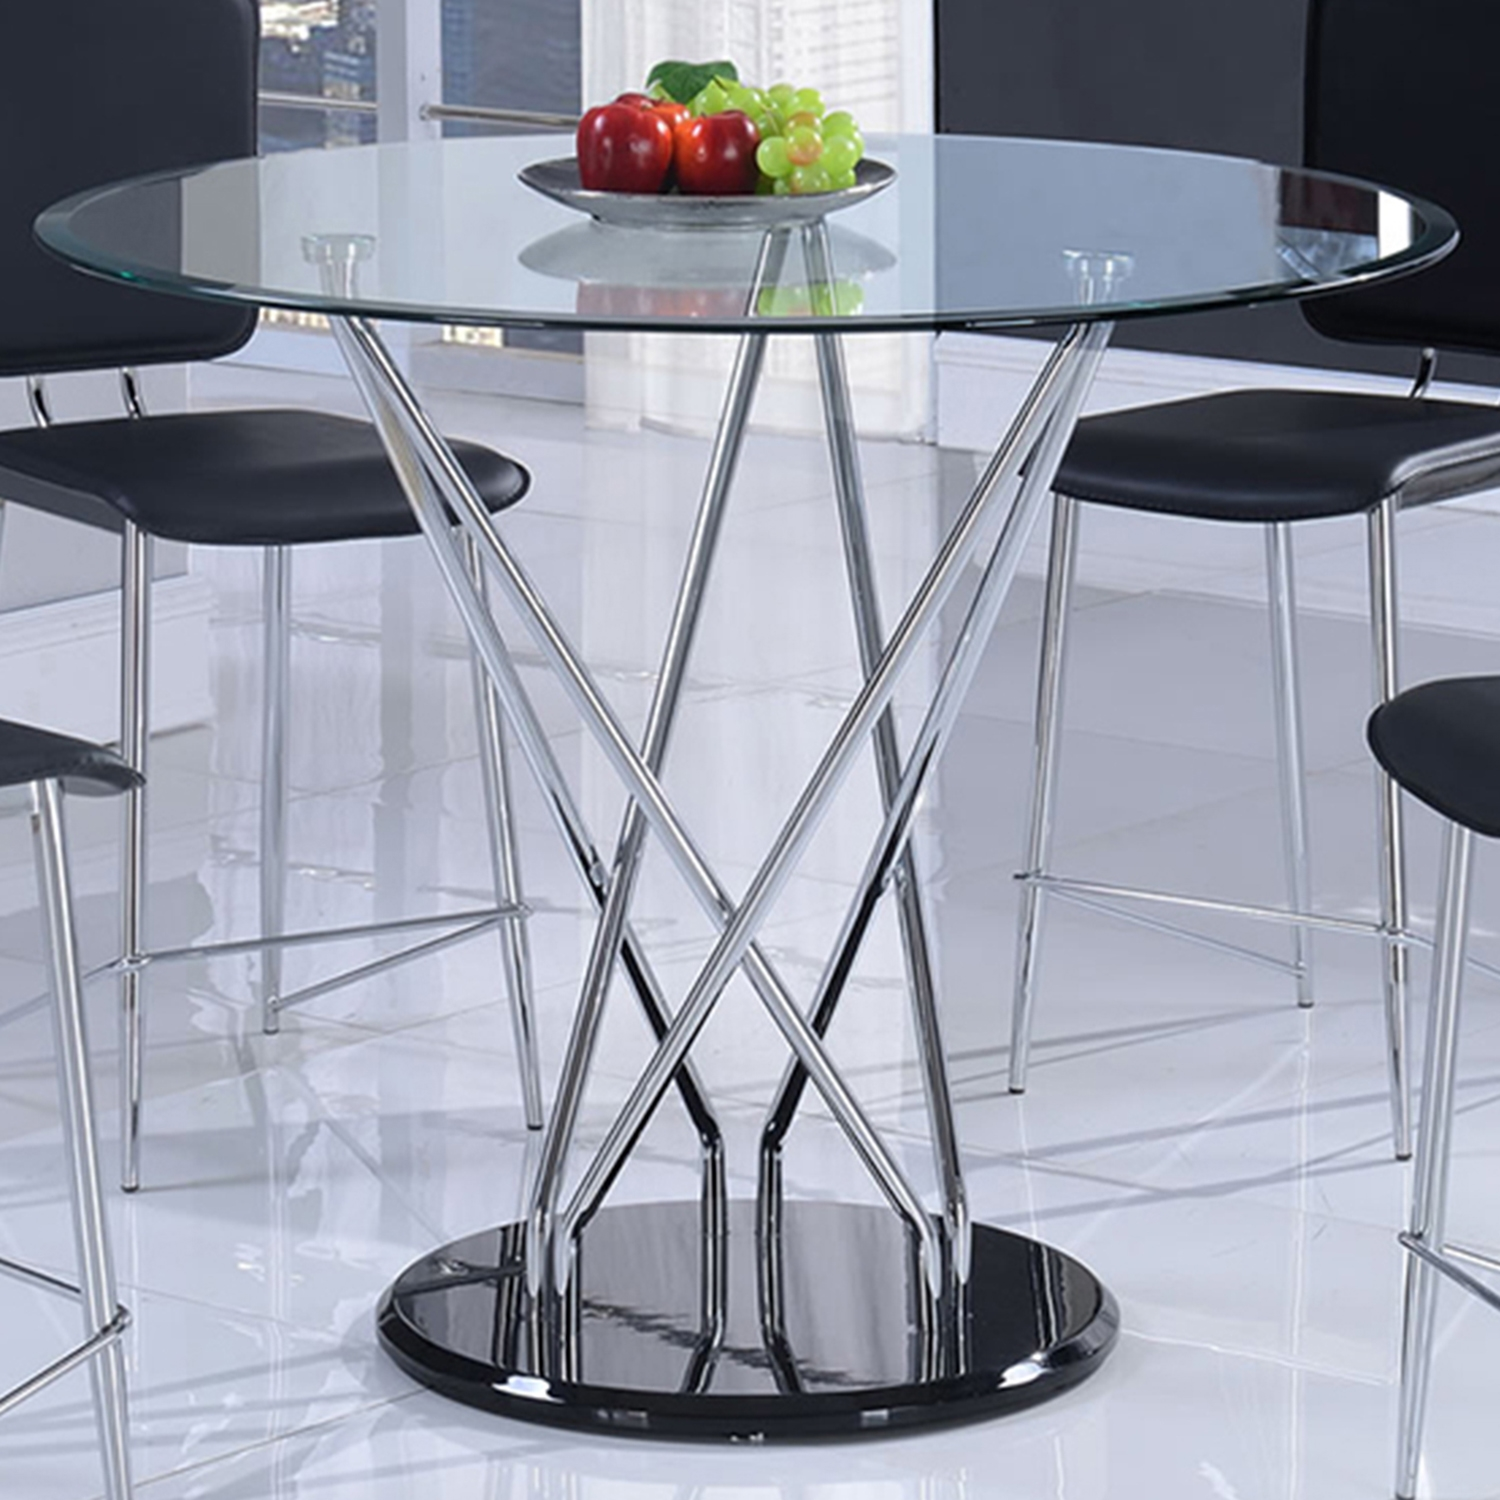 Ariana Counter Height Table in Clear, Chrome, and Black - GLO-D1071BT-M